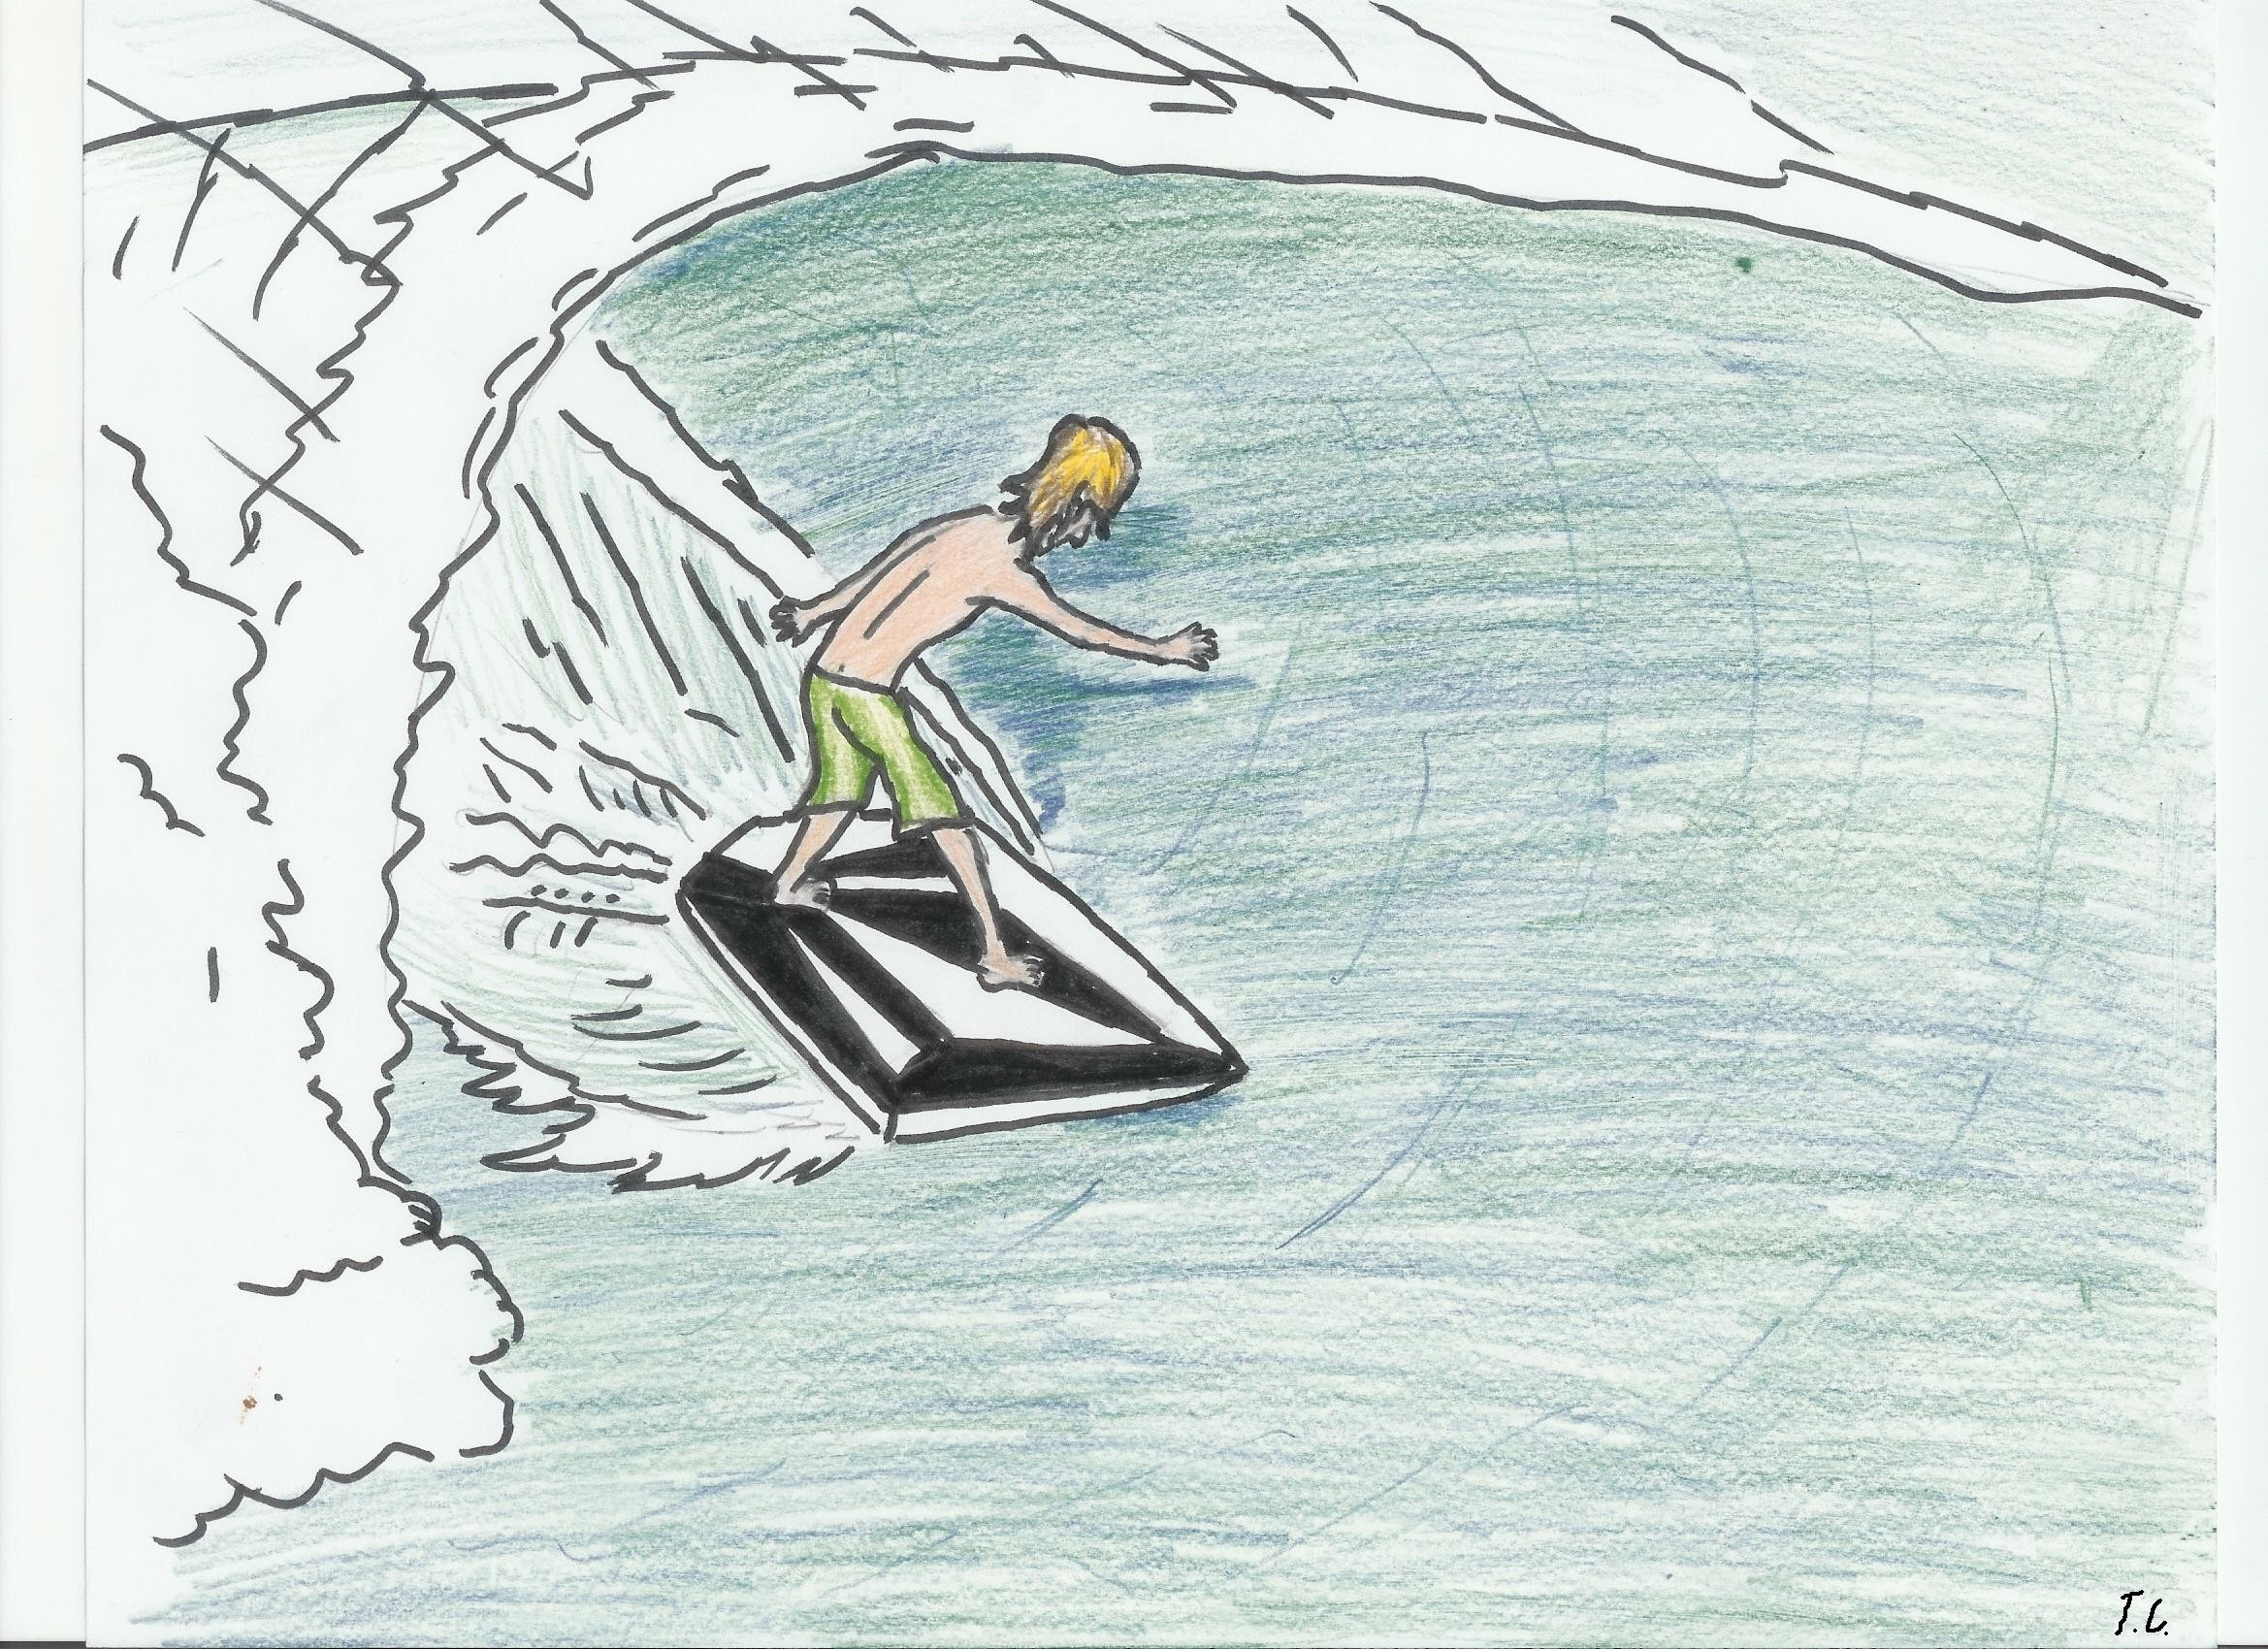 Res: 2338x1700, For Volcom by SurfArtist For Volcom by SurfArtist